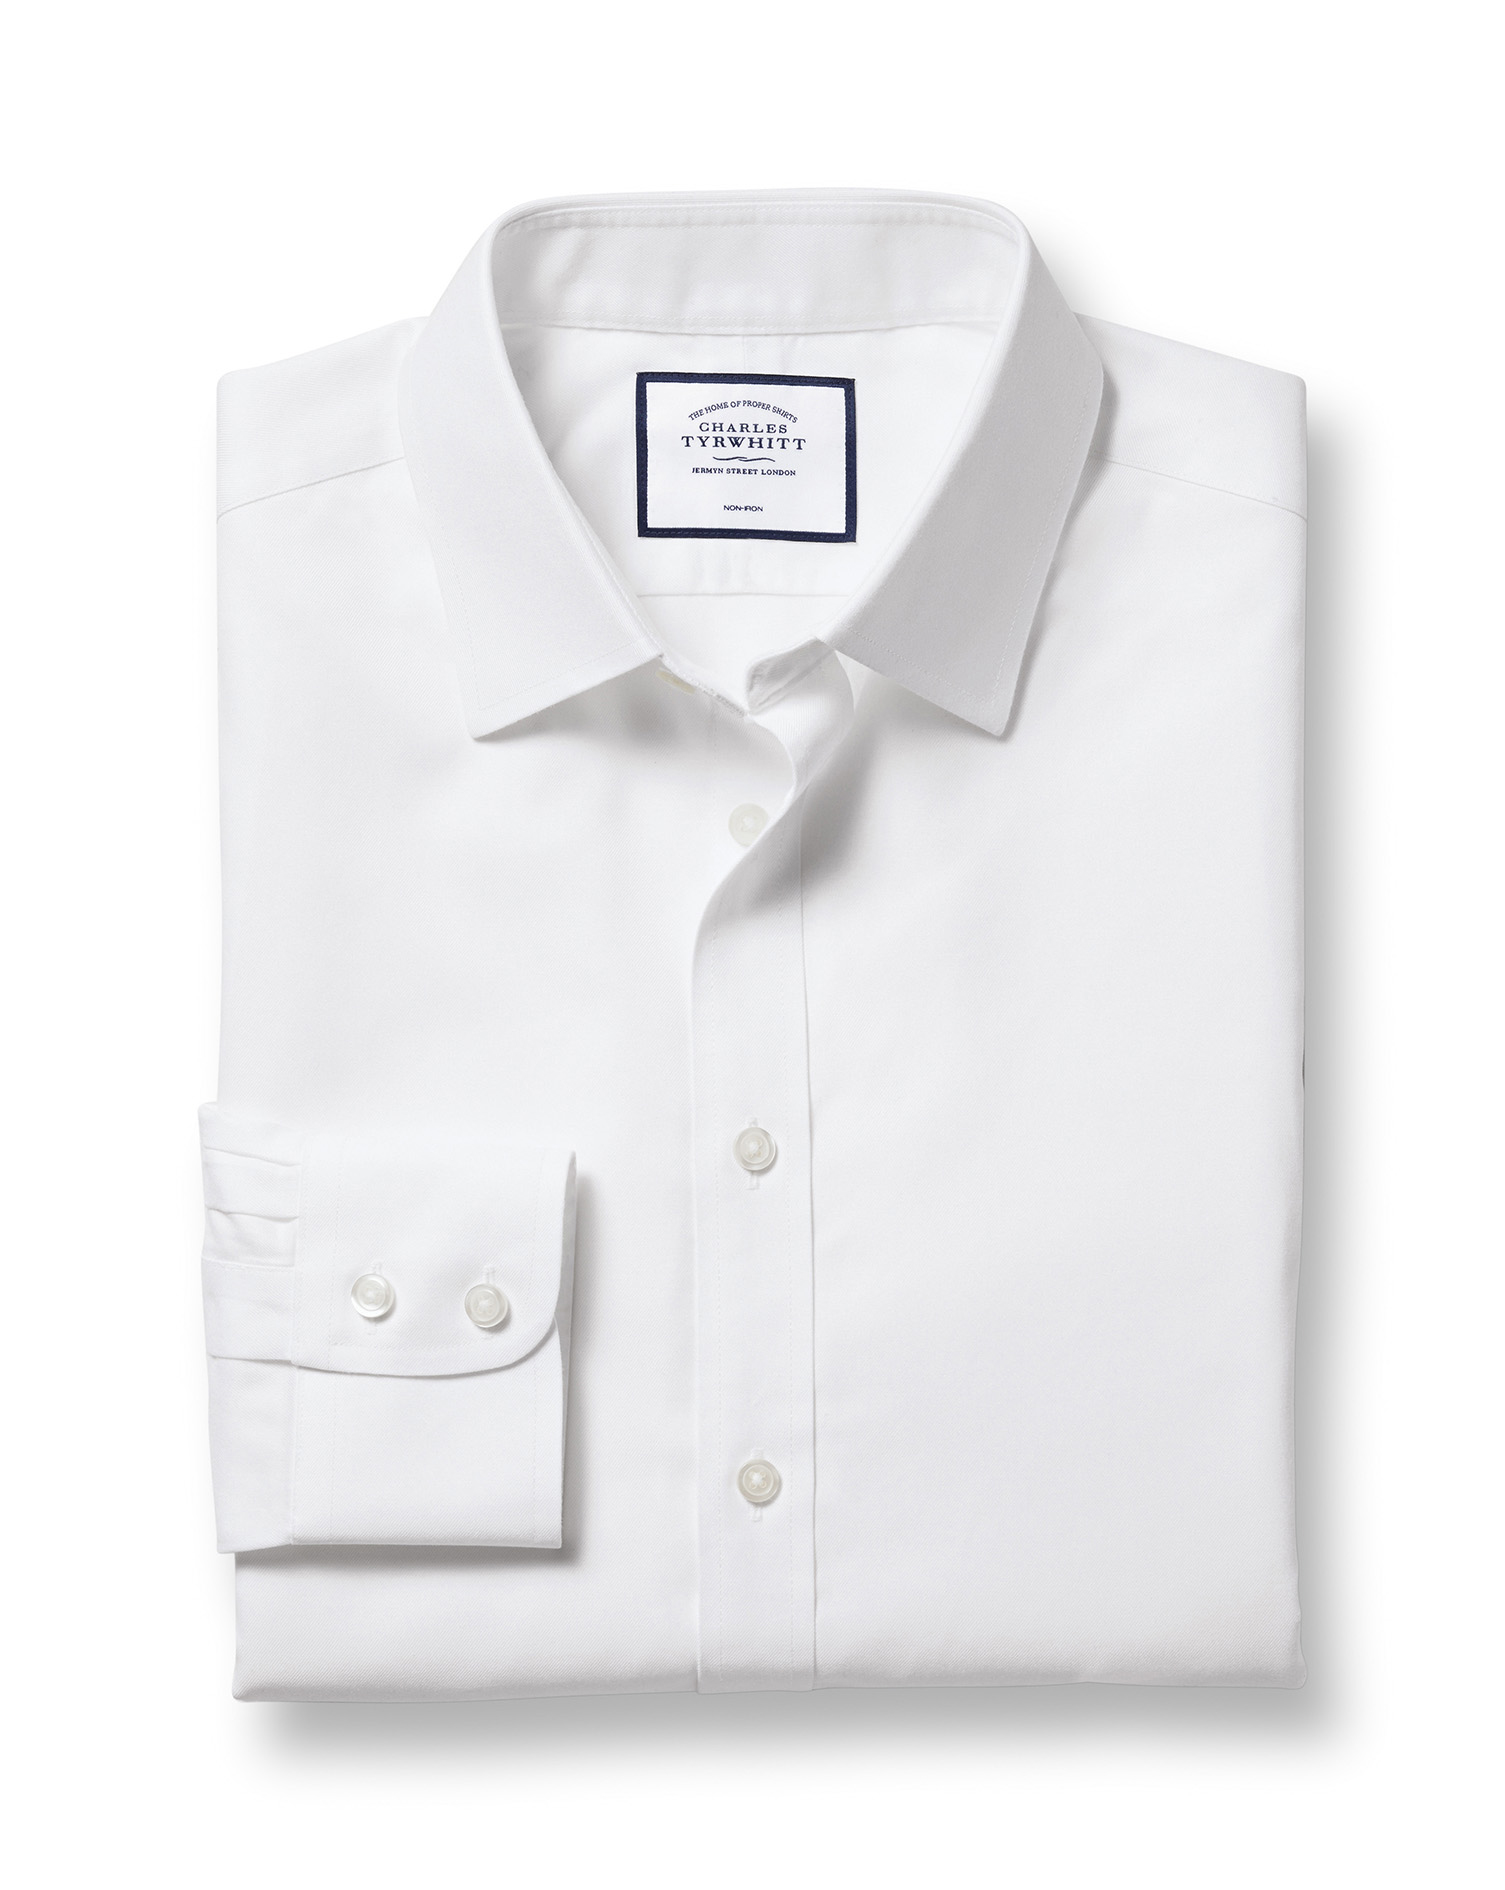 Classic Fit Non-Iron Twill White Cotton Formal Shirt Double Cuff Size 17/33 by Charles Tyrwhitt